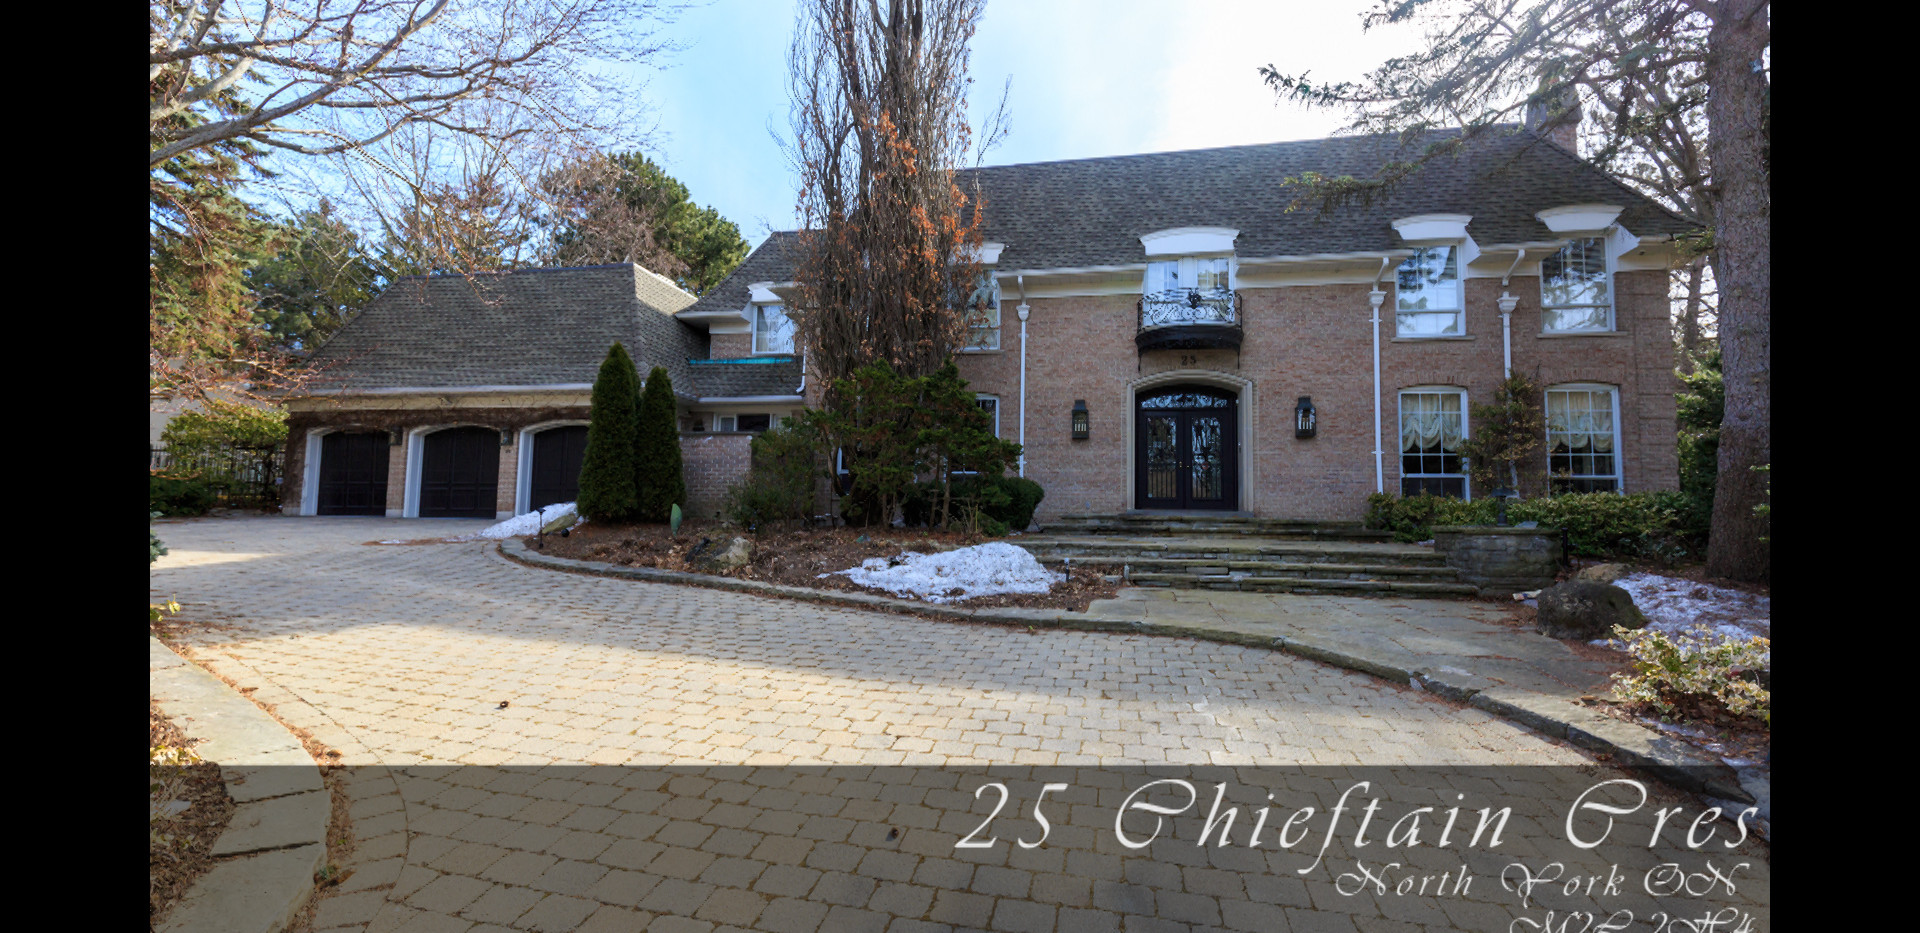 25 Chieftain Cres